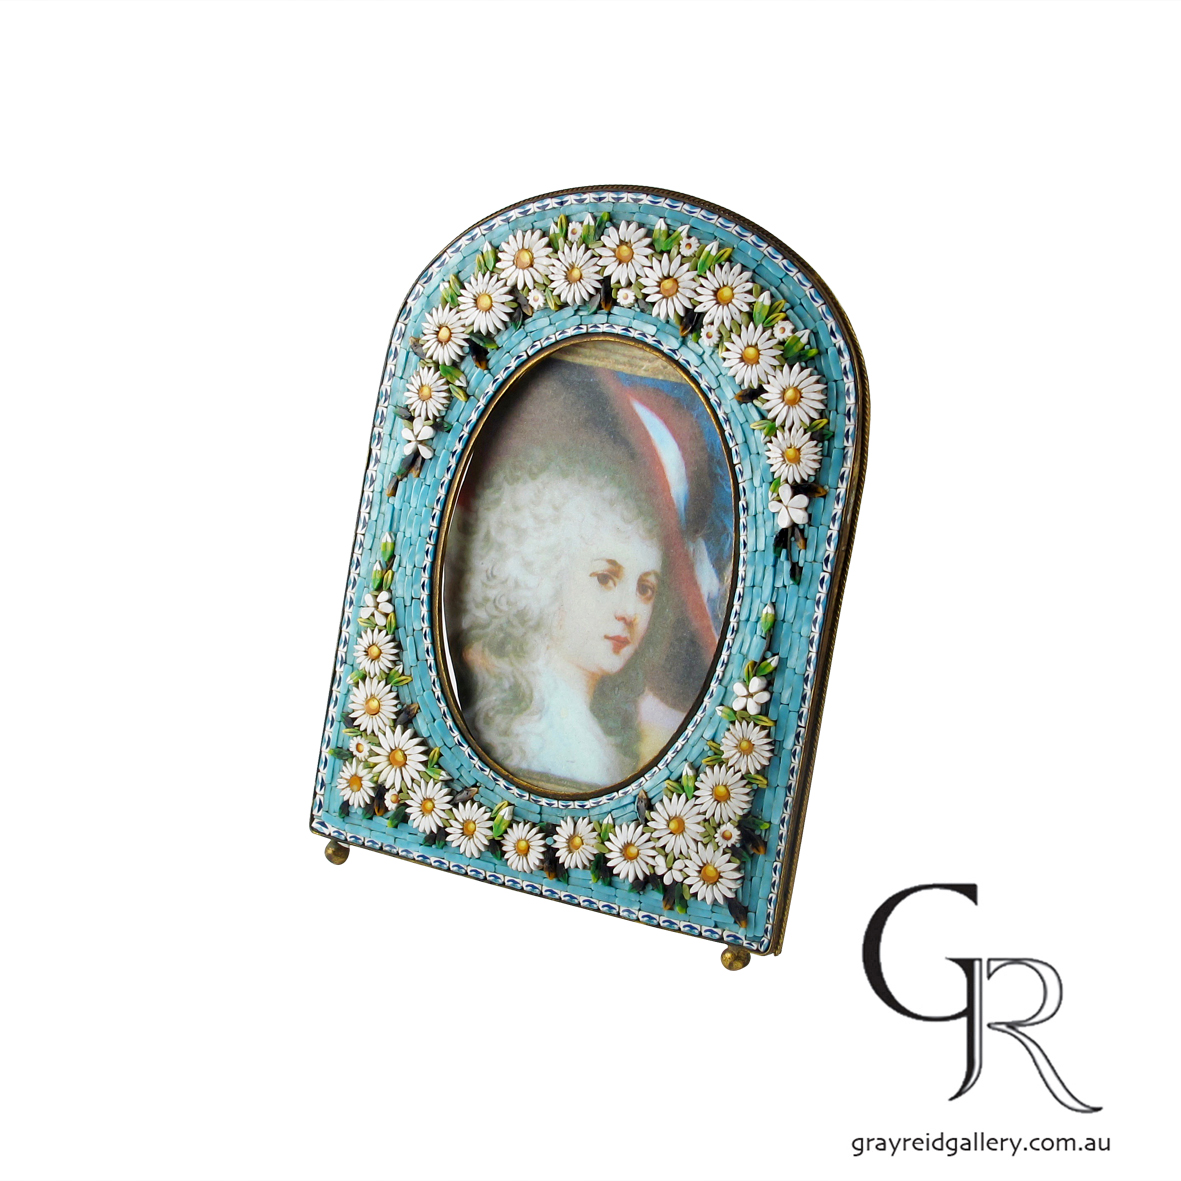 antiques and collectables melbourne micro mosaic picture frame Gray Reid Gallery 4.jpg